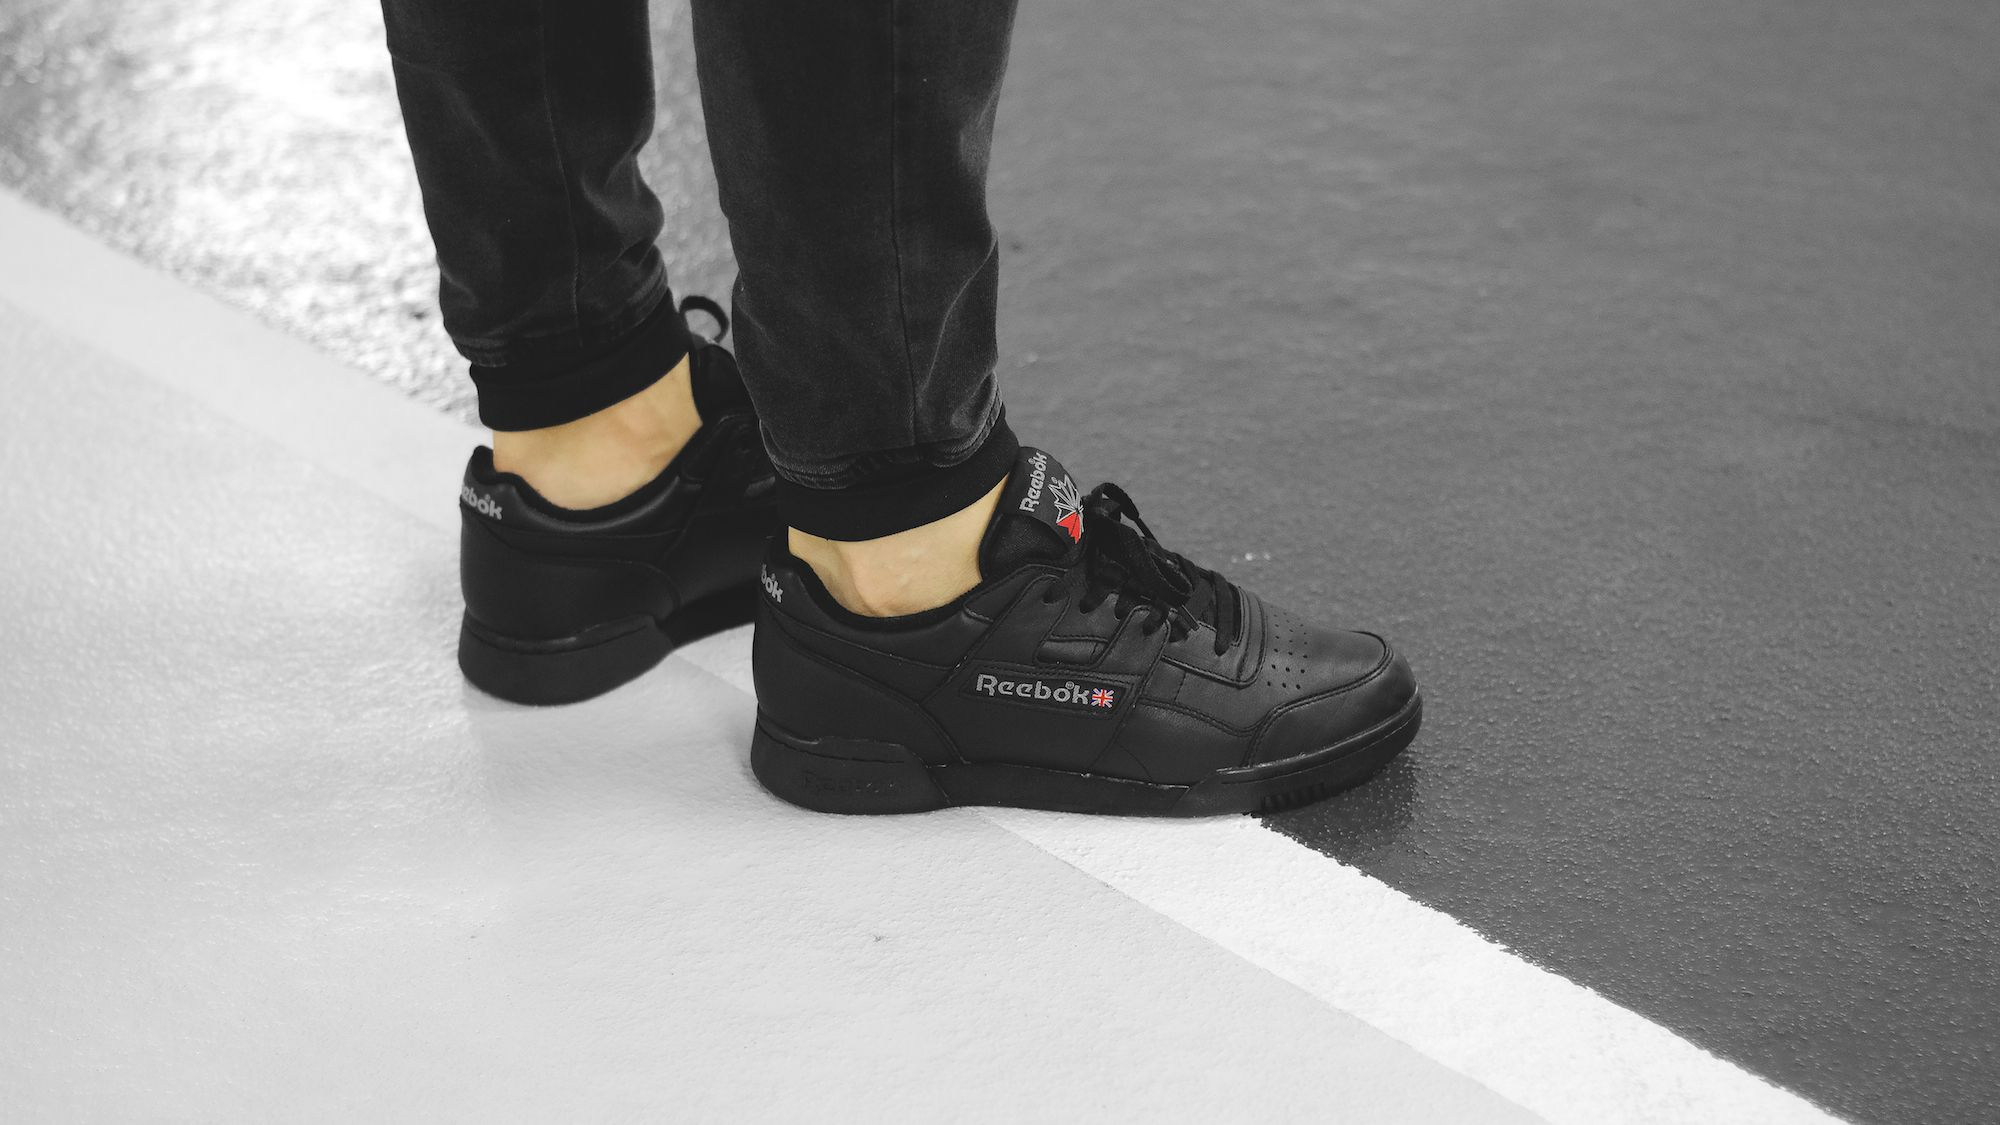 957d0463ed4b REEBOK WORKOUT PLUS VINTAGE (black) SKU BD3387